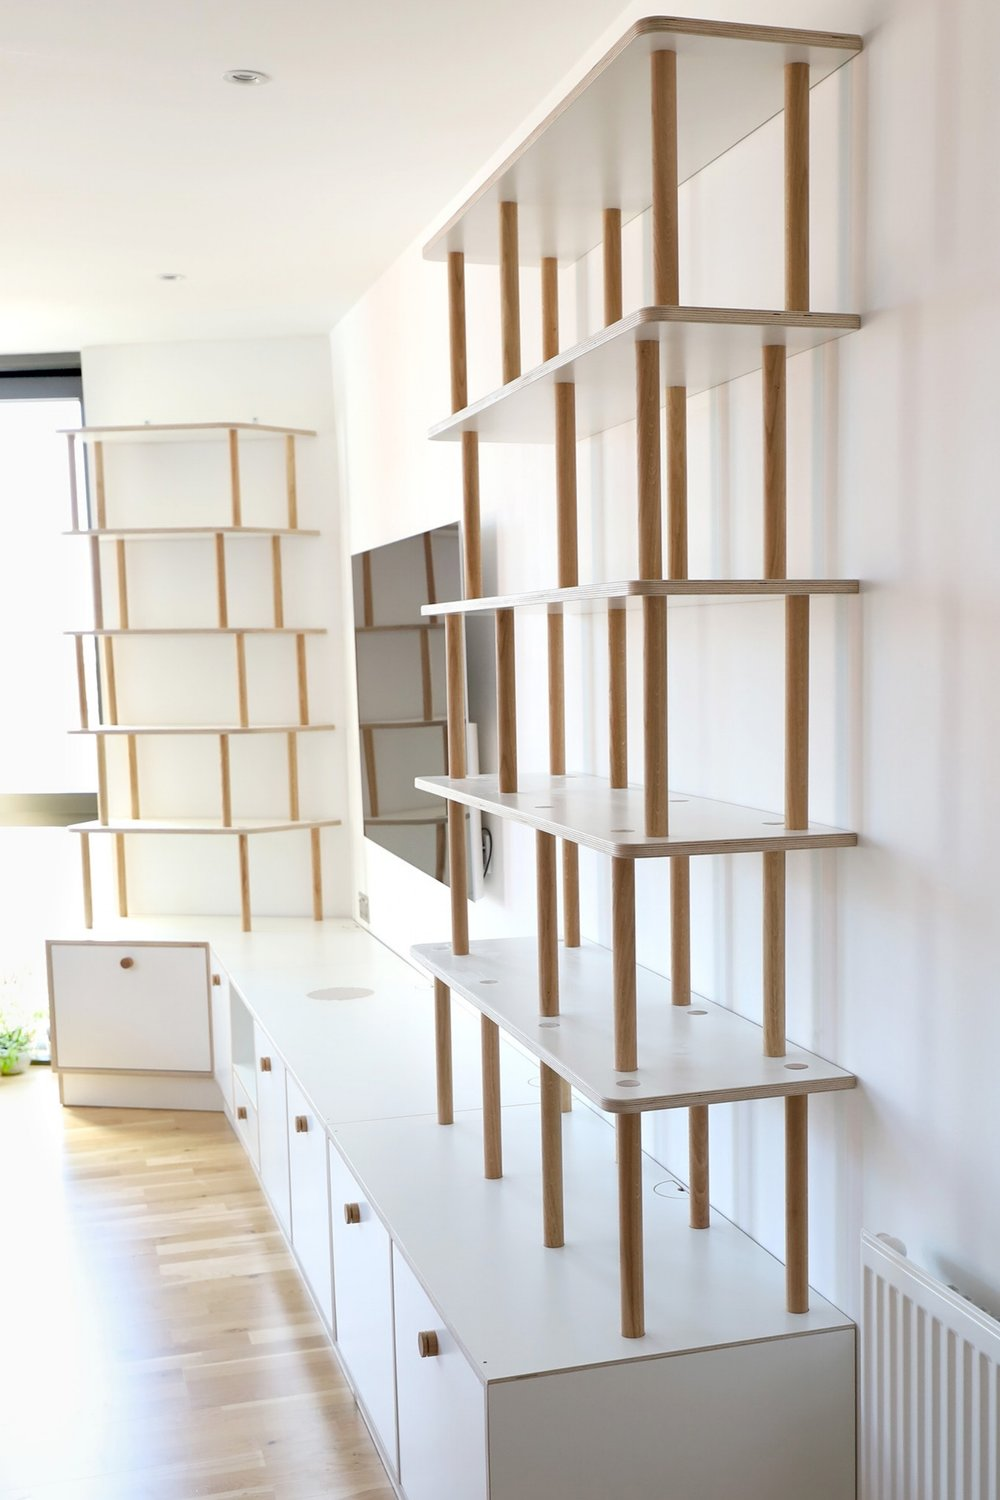 The shelving system is made to fit perfectly into the wide angled corner of the room.